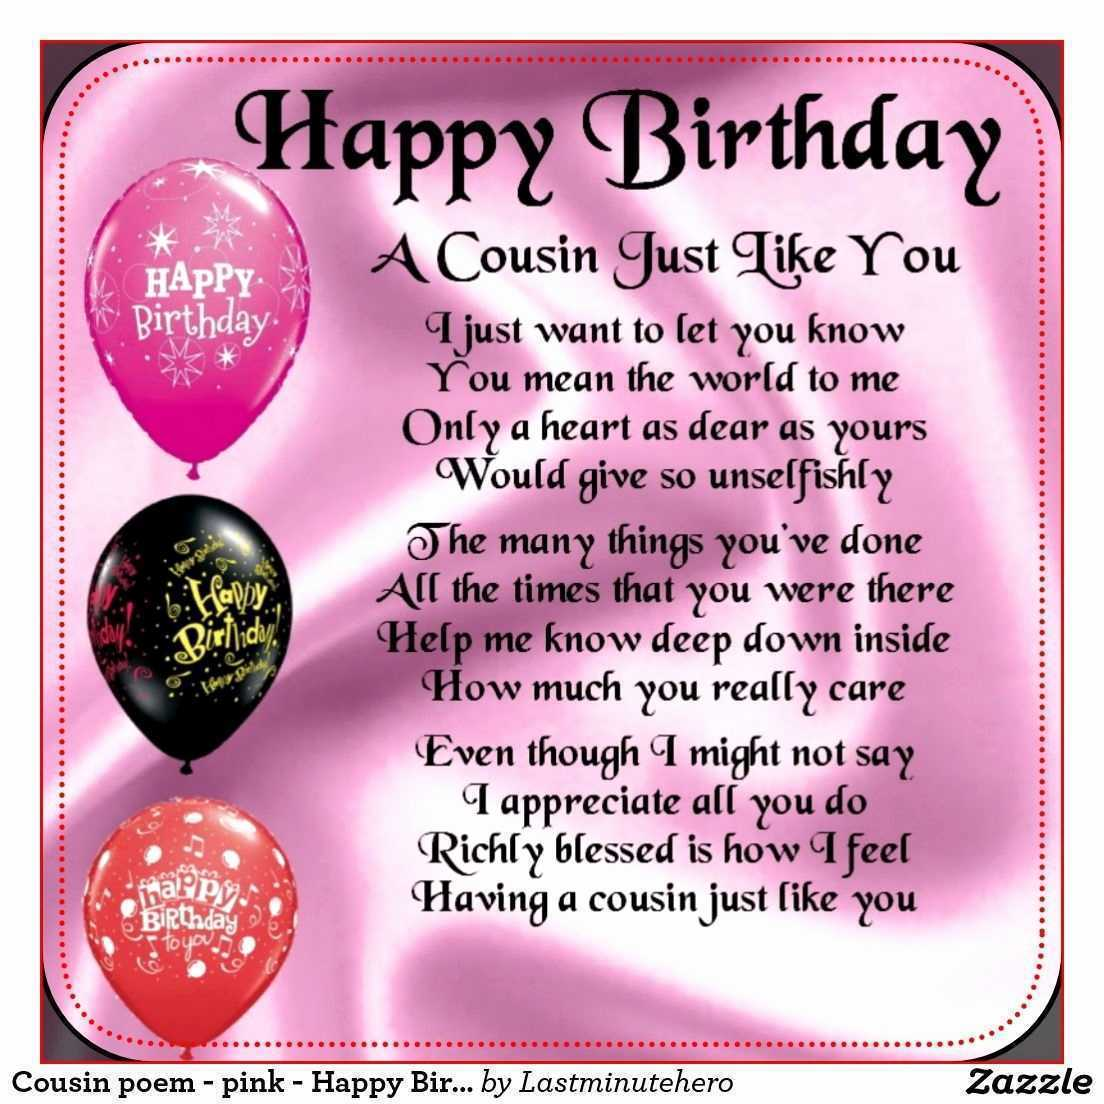 Happy Birthday Images For Cousin Free Beautiful Bday Cards And Pictures Bday Card Com